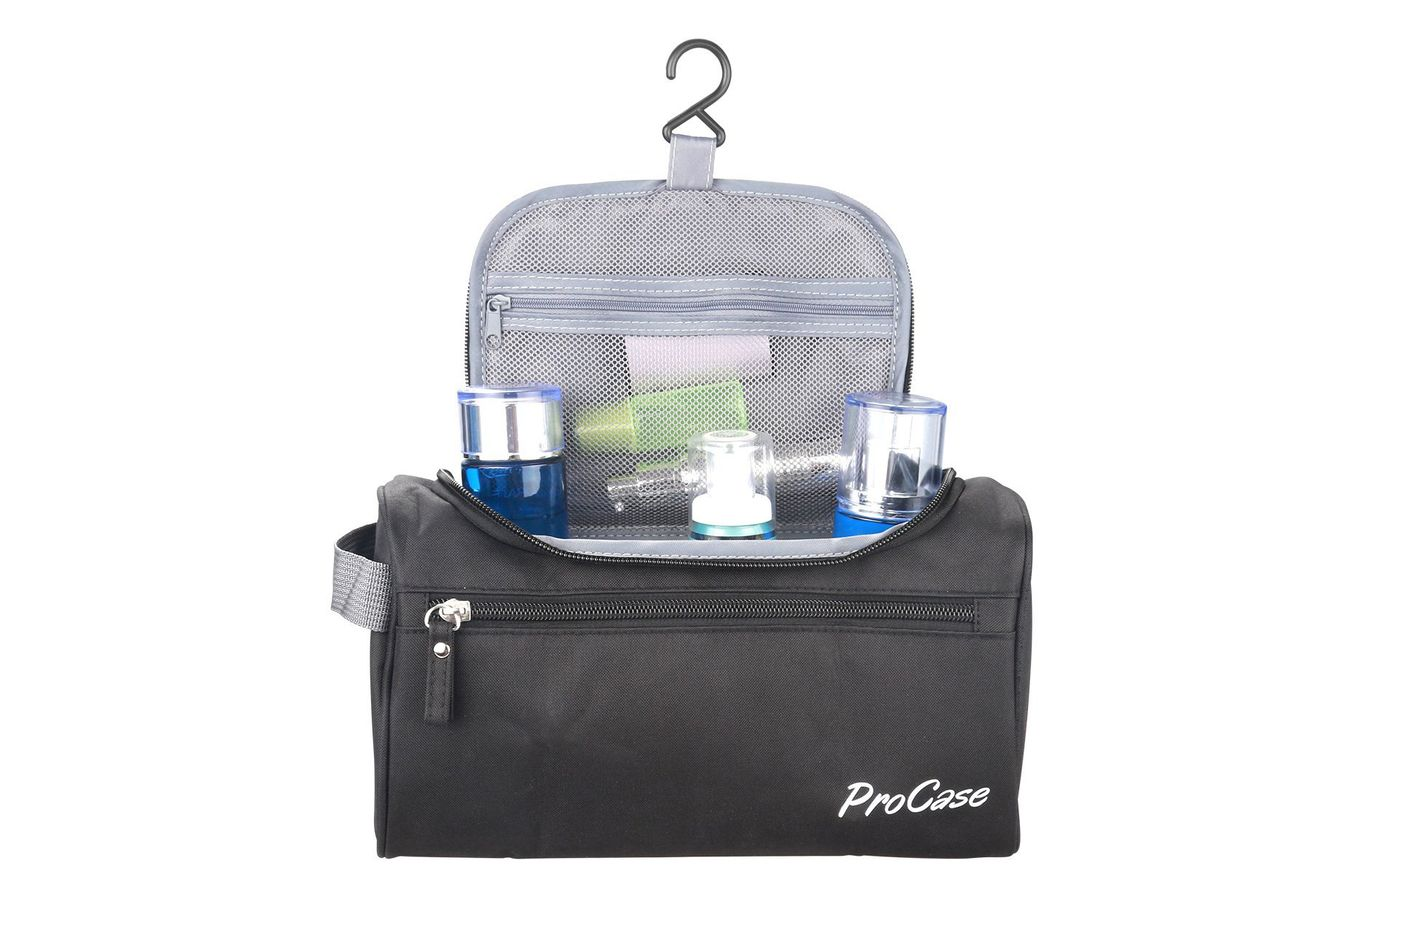 ProCase Toiletry Bag Travel Case With Hanging Hook